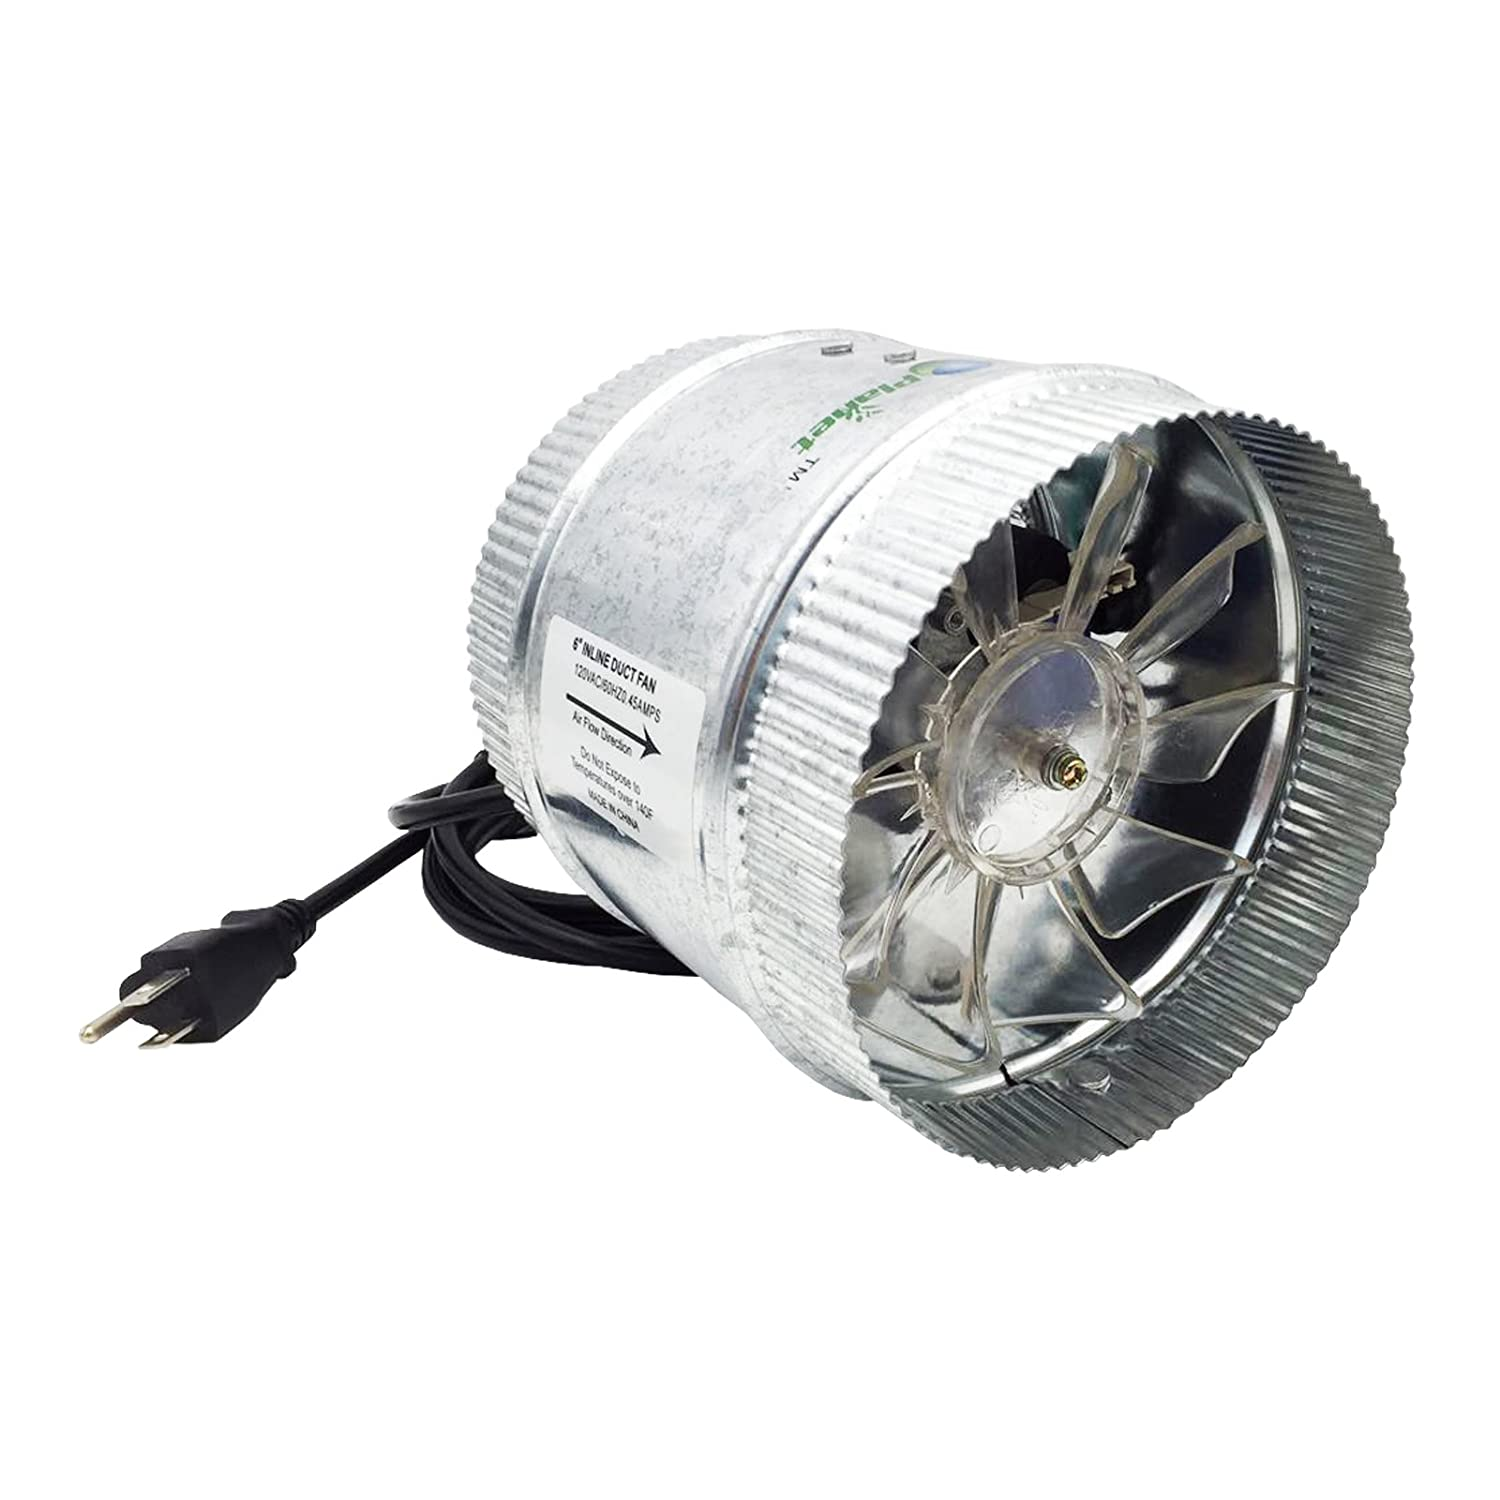 4 Inch Duct Fan : Hydroplanet duct booster exhaust fan inch cfm ebay